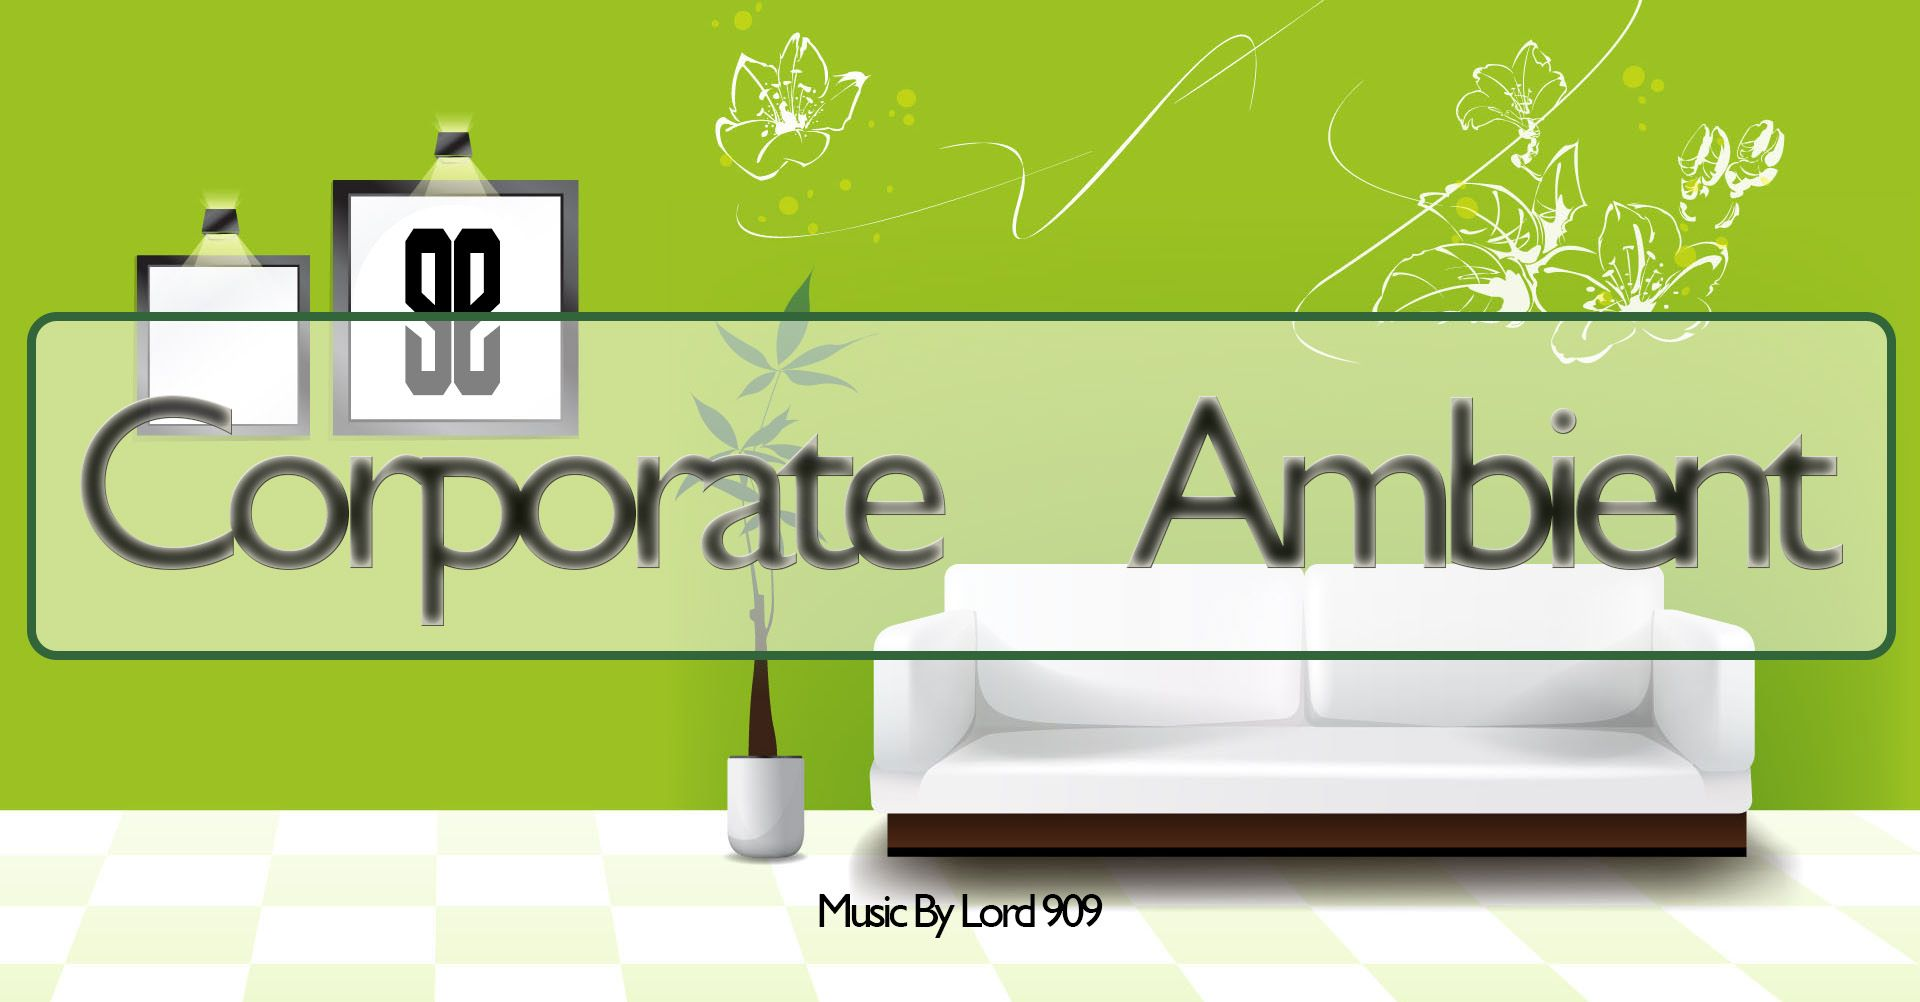 Corporate Ambient - Lord 909